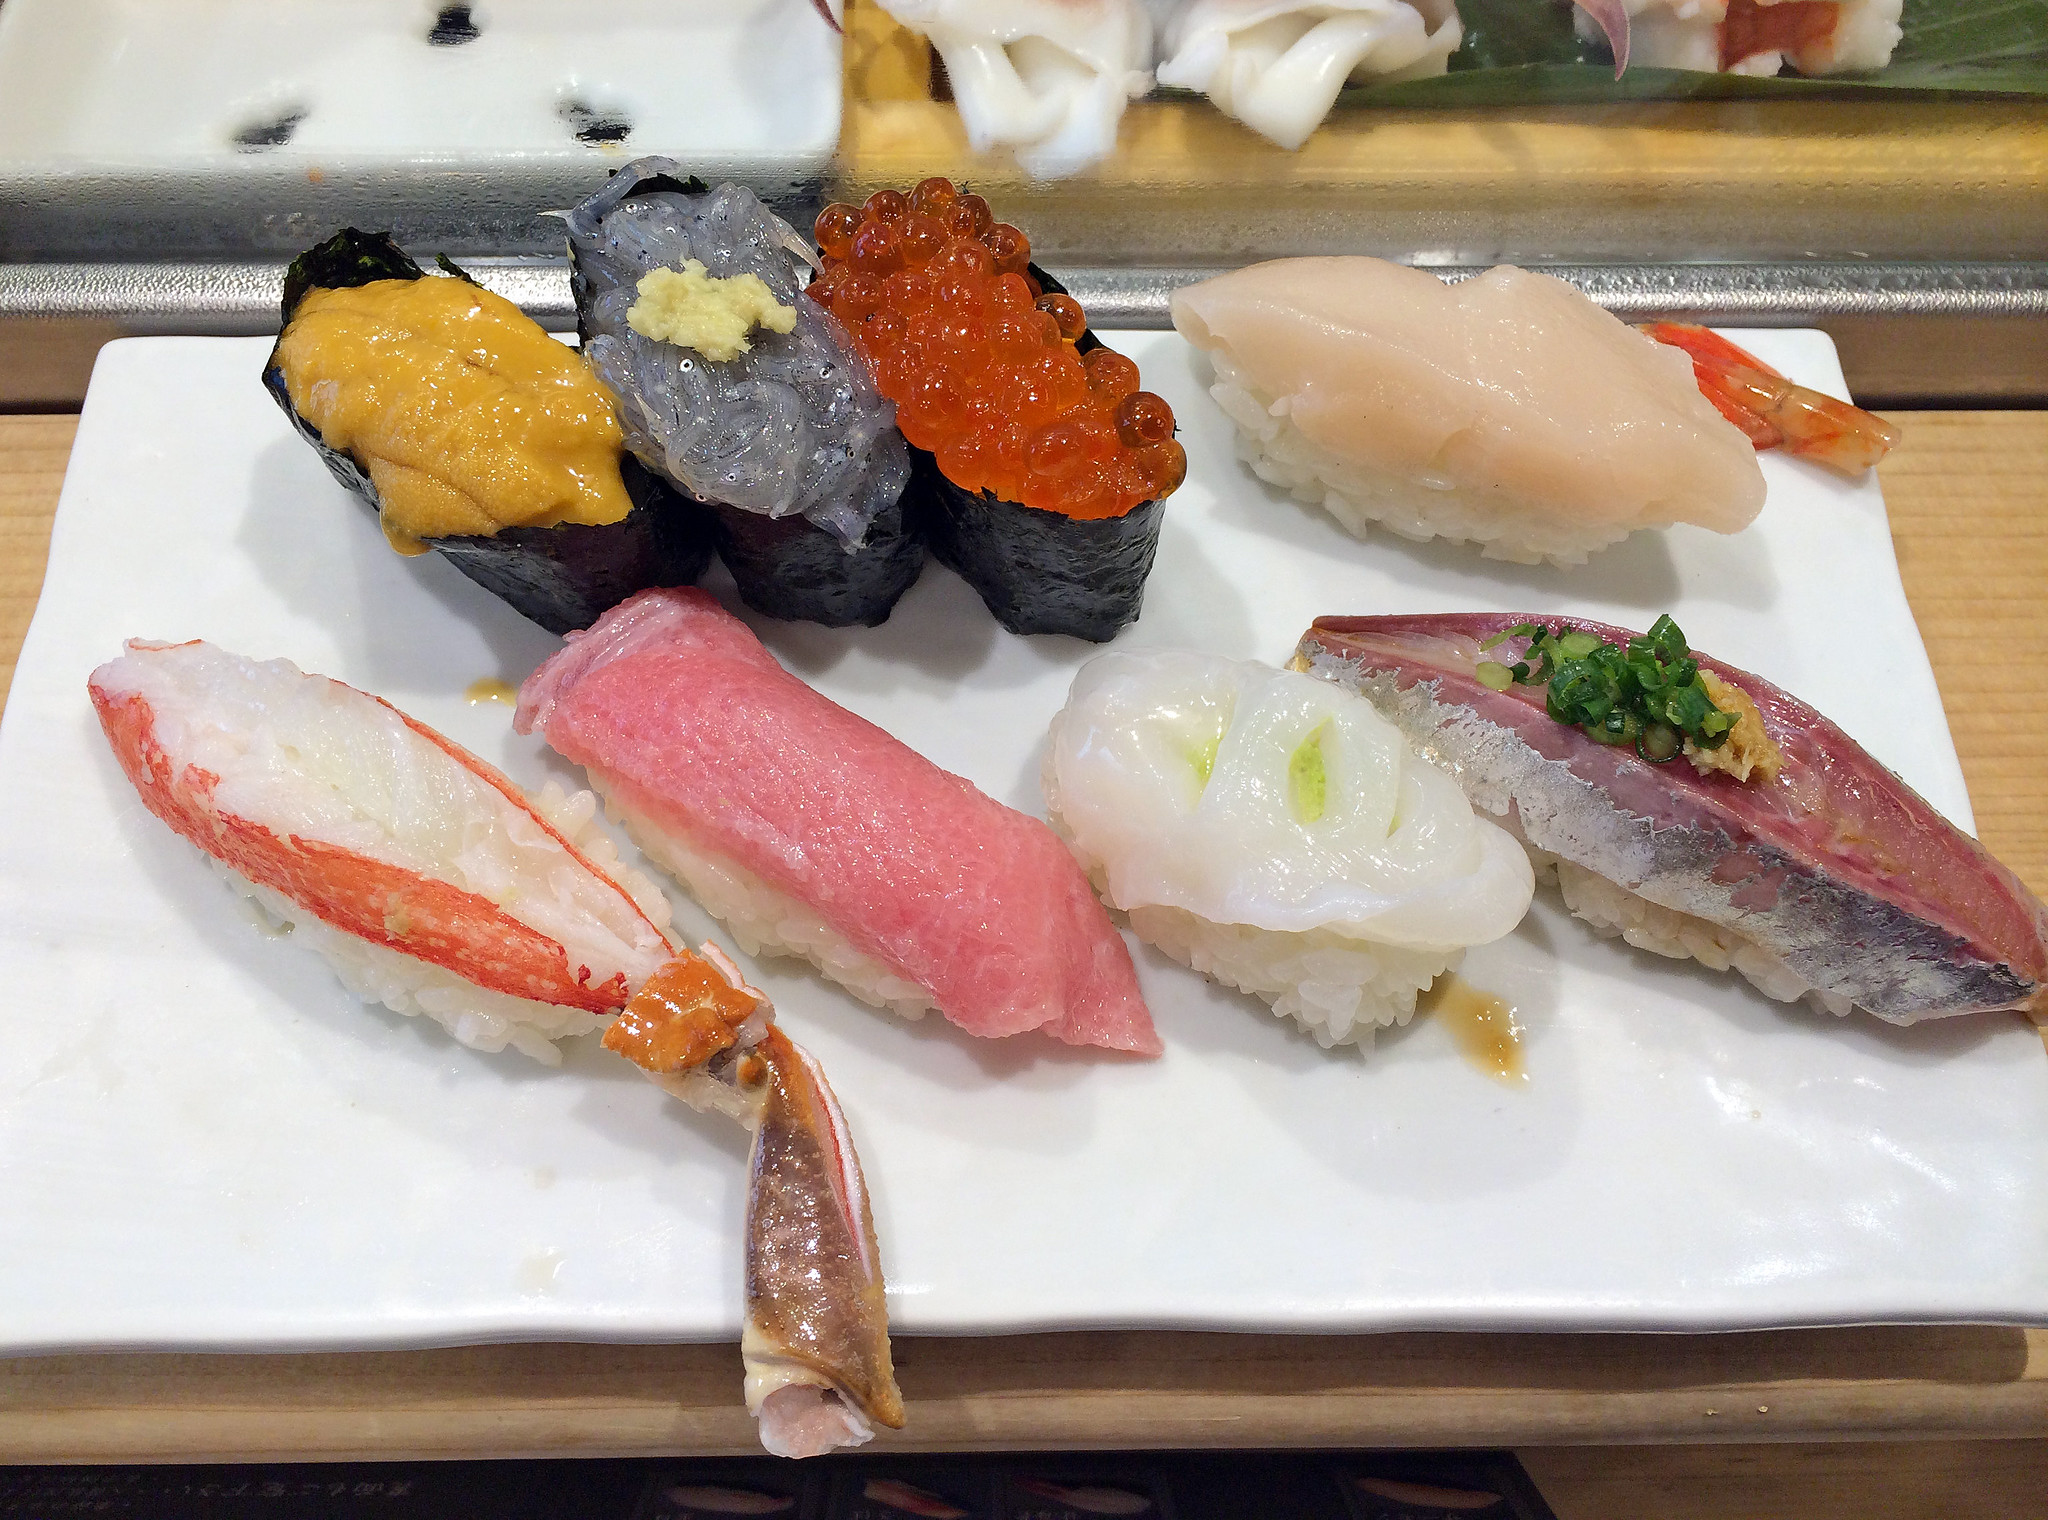 Breakfast sushi at Tsukiji Market